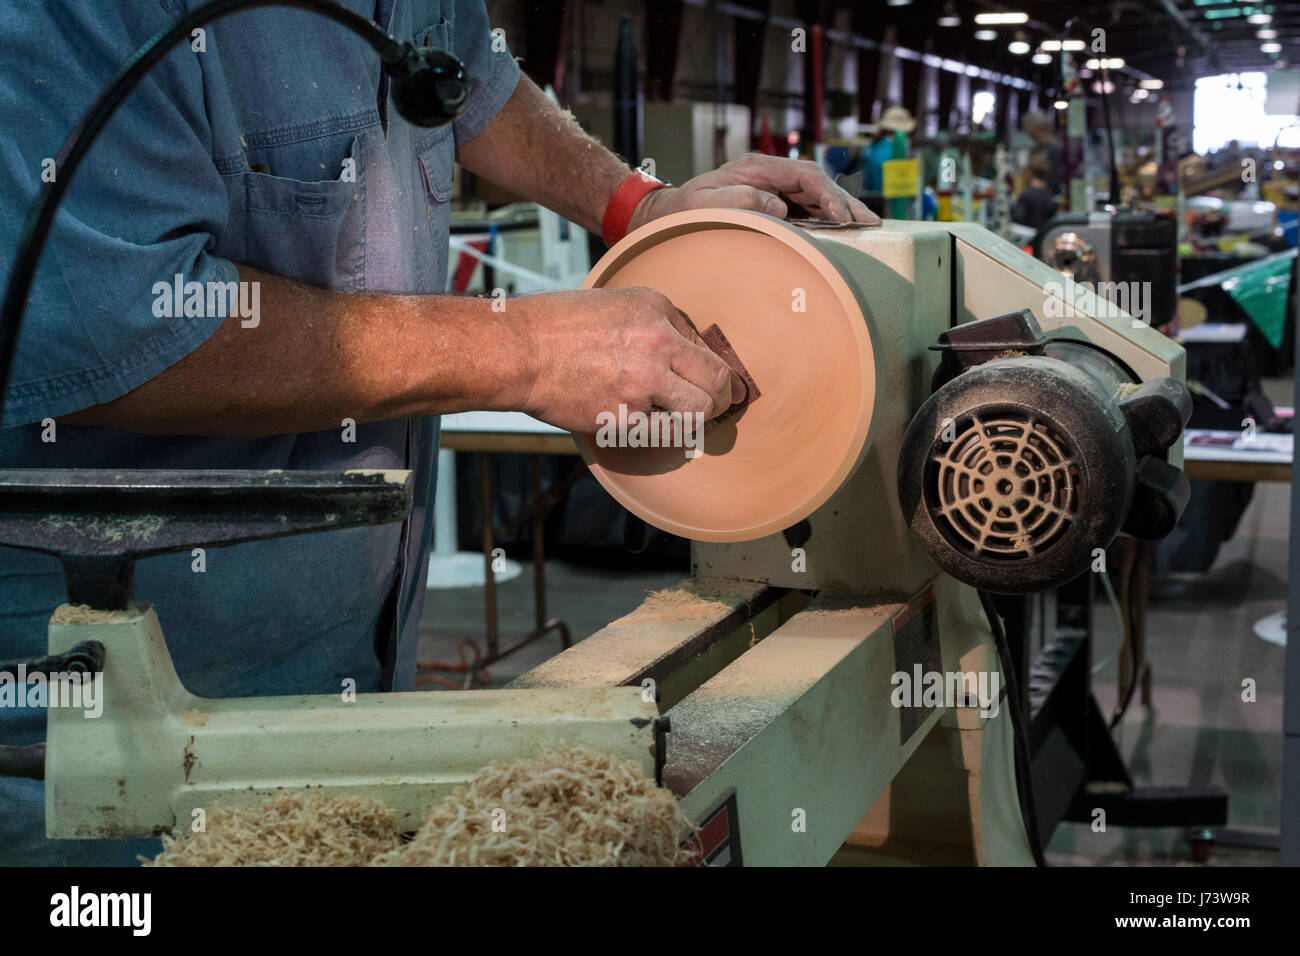 Phoenix, Arizona - A craftsman demonstrates producing a wooden bowl at the Maricopa County Fair. - Stock Image